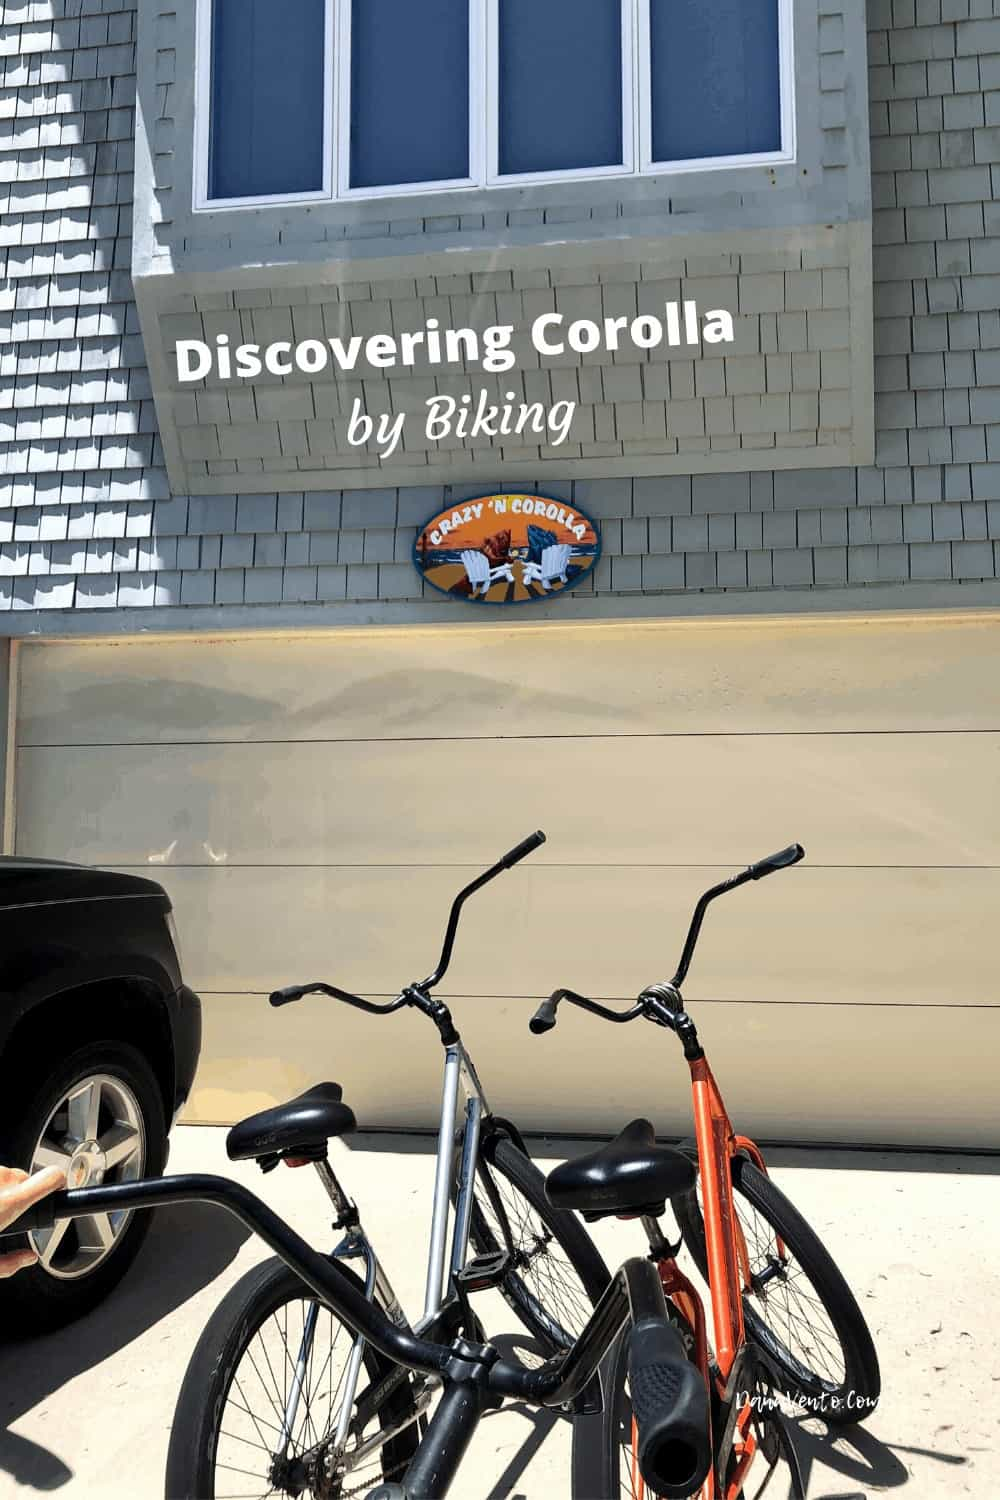 Bikes Parked at Crazy N Corolla in Corolla Community